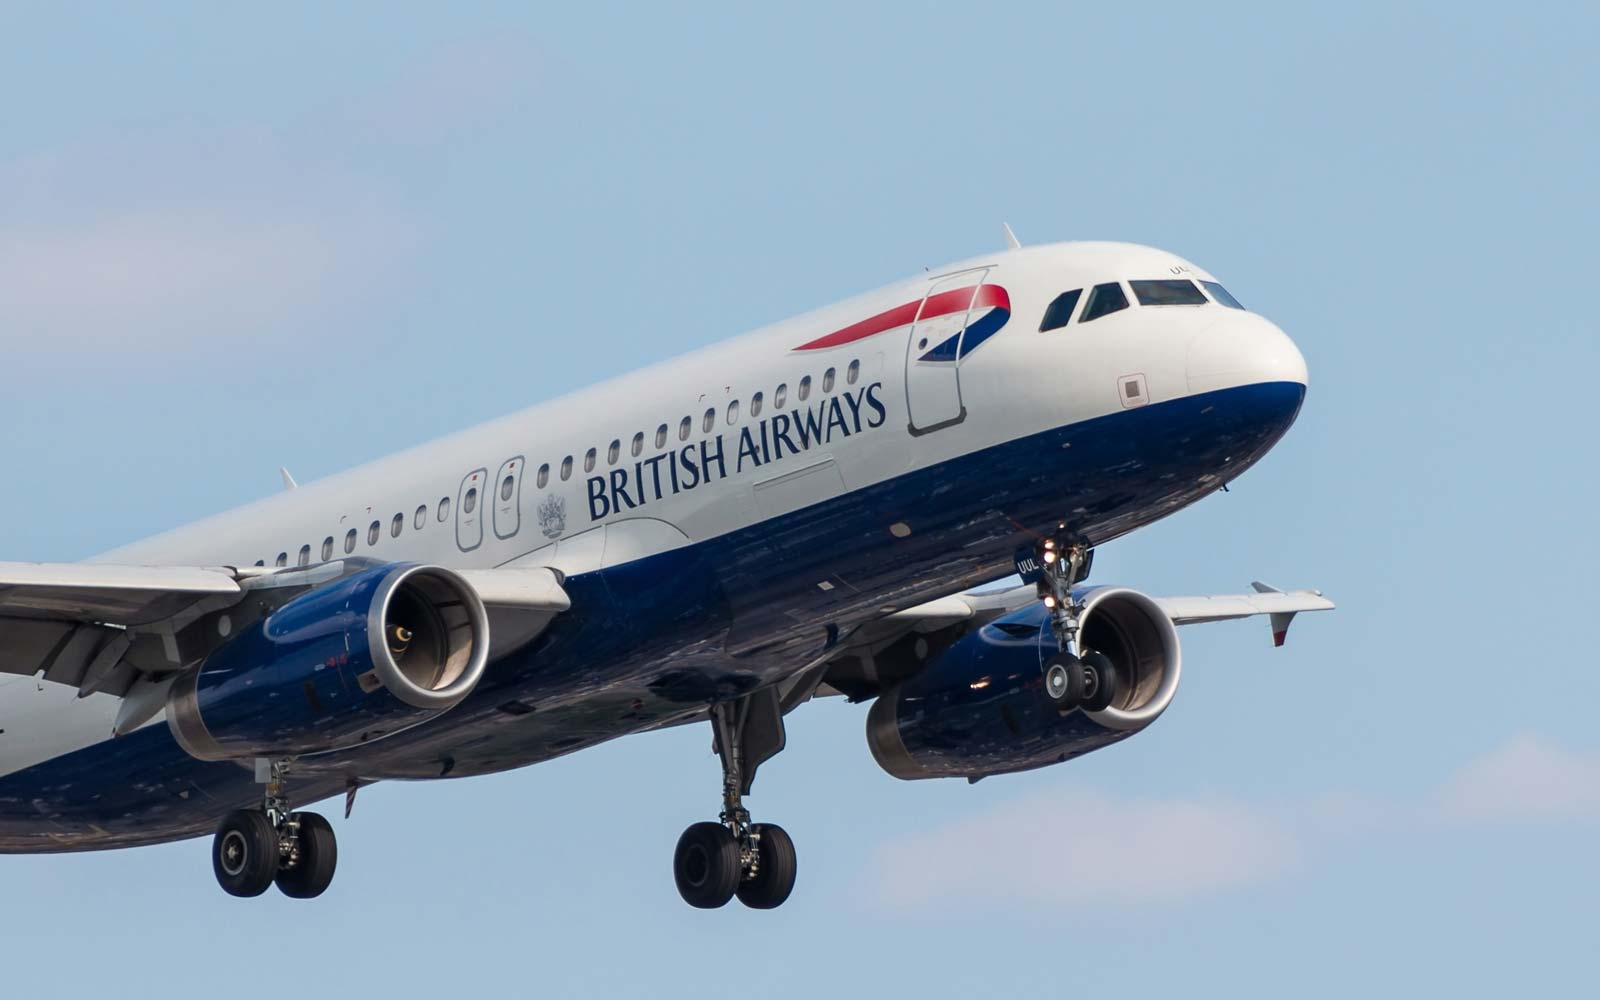 British Airways Plane landing